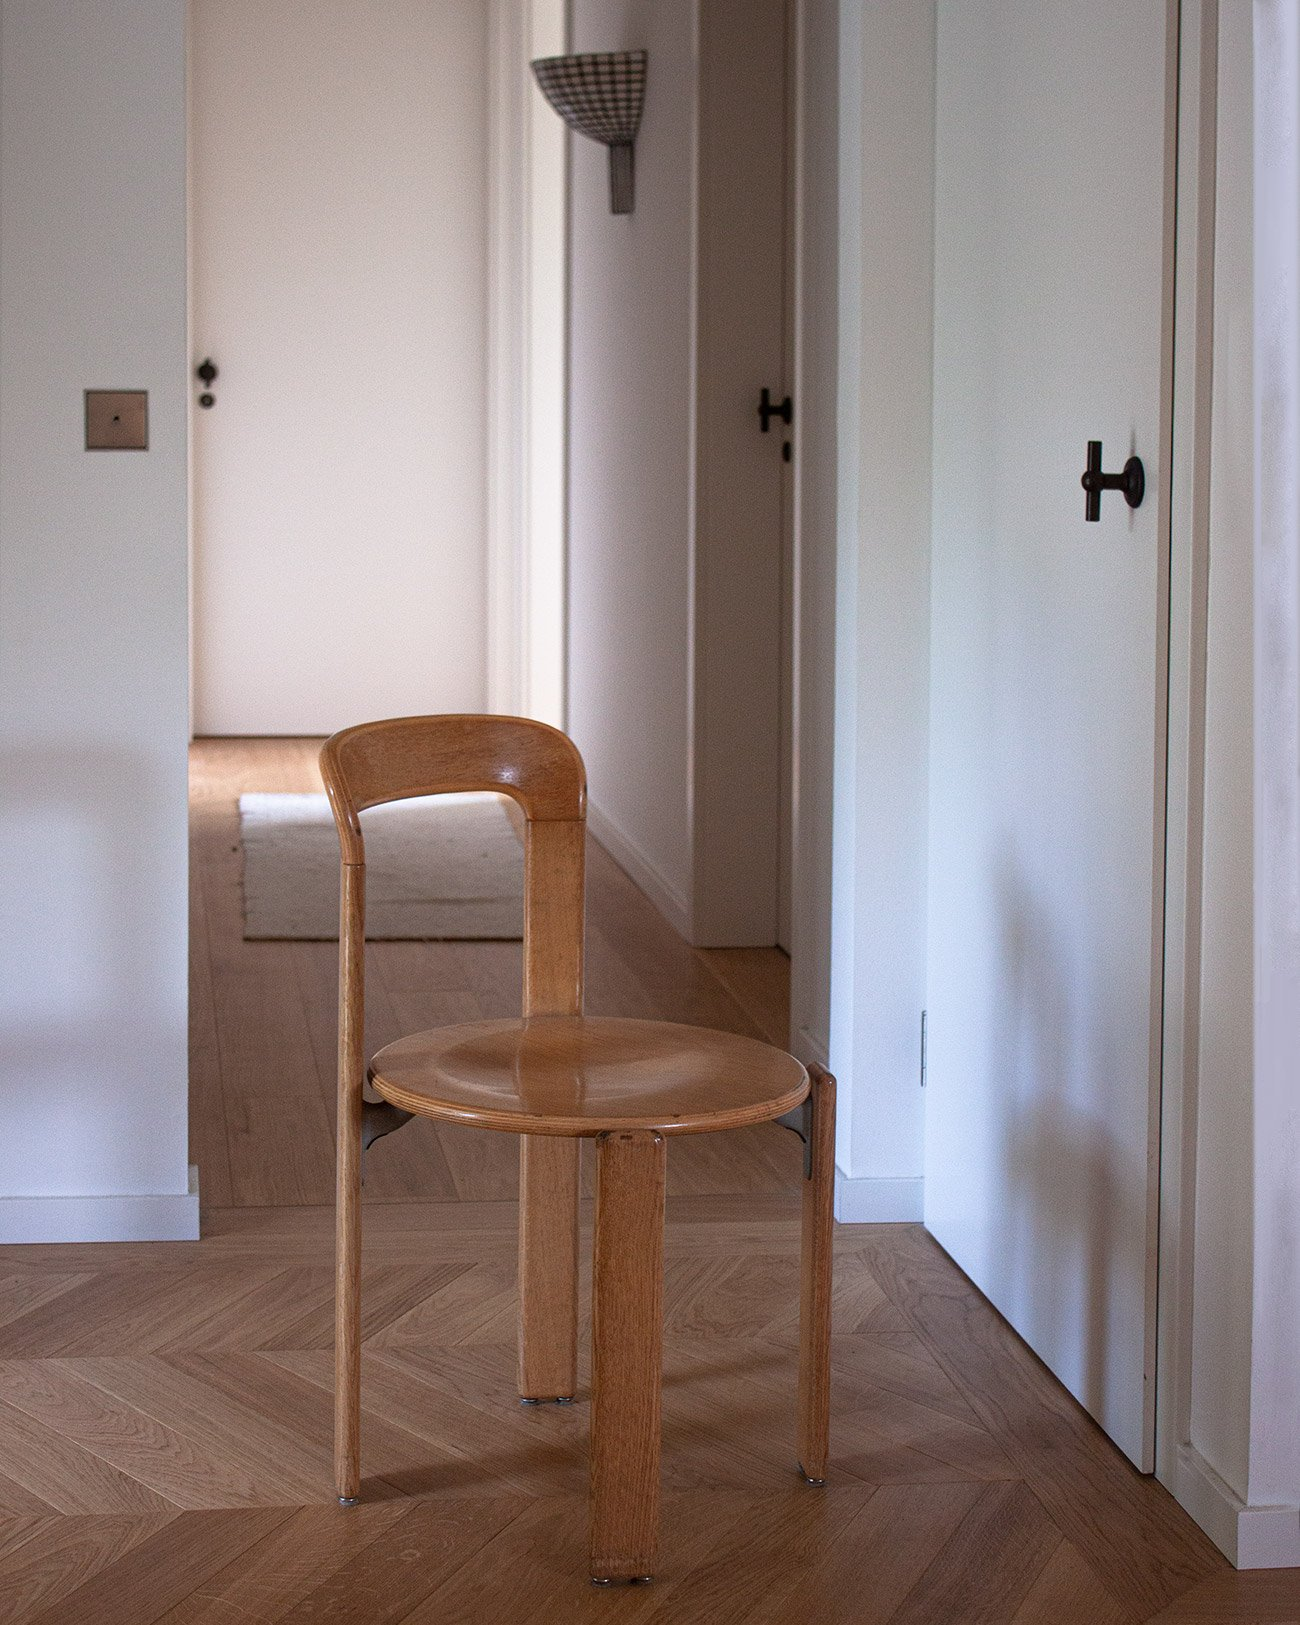 Bruno Rey natural wood dining chair